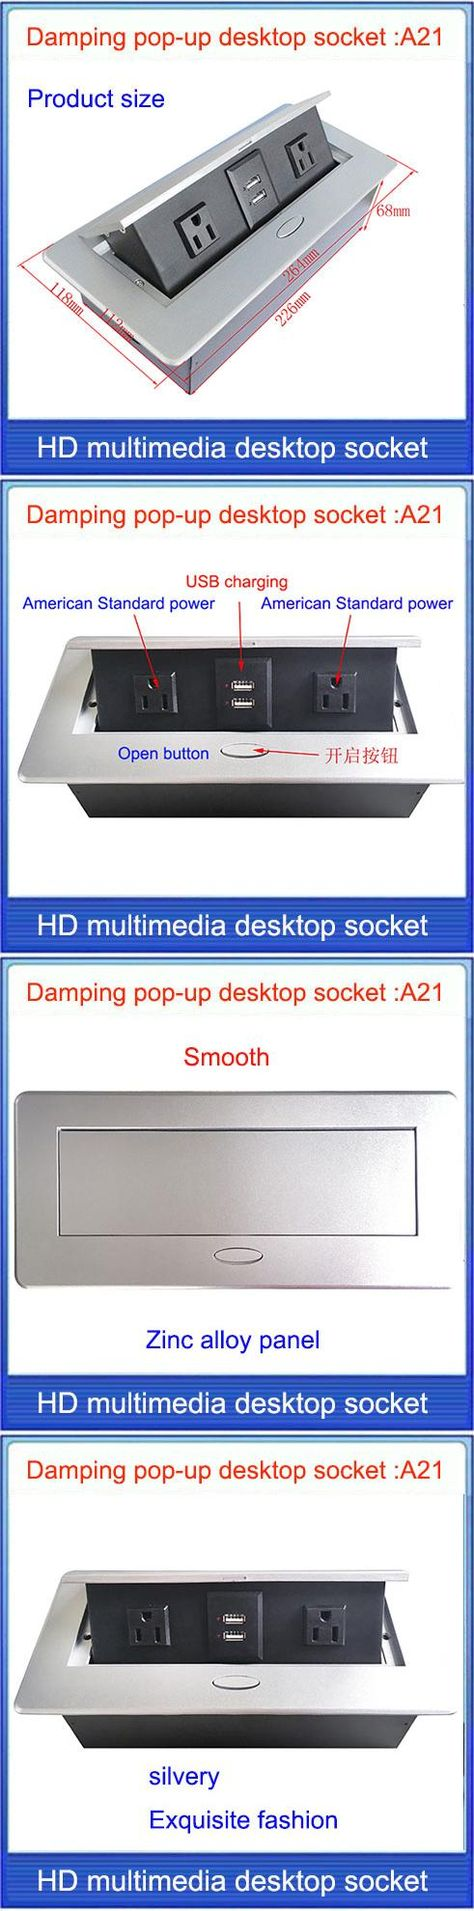 Multifunction pre buried ground socket for office multifunctional multifunction pre buried ground socket for office multifunctional media conference room bank market mall hospital hotel affiliate pinterest sciox Choice Image